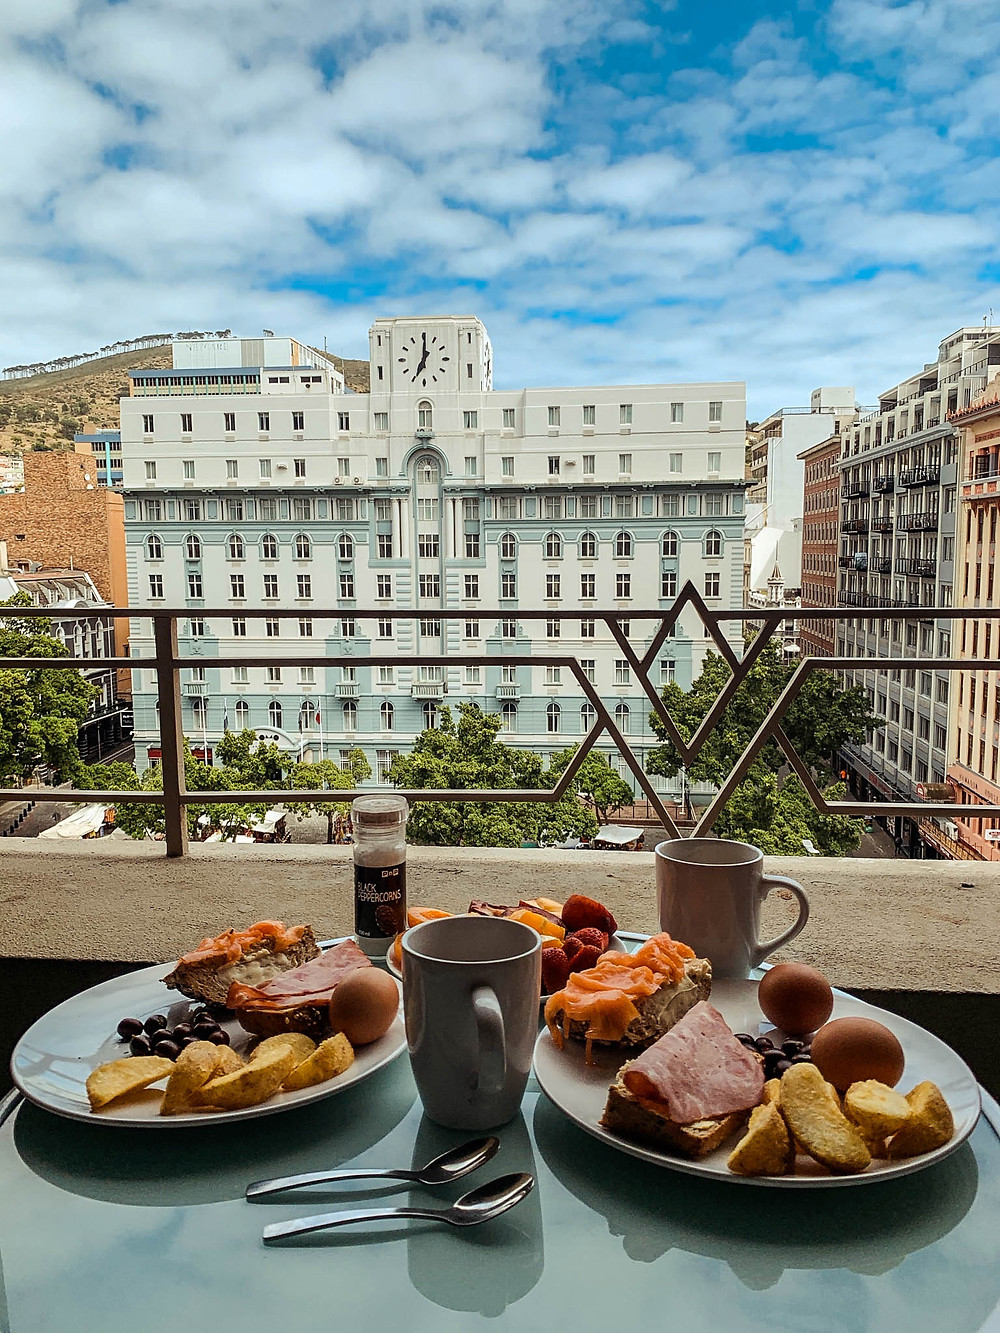 Breakfast on our apartment's balcony overlooking Greenmarket Square